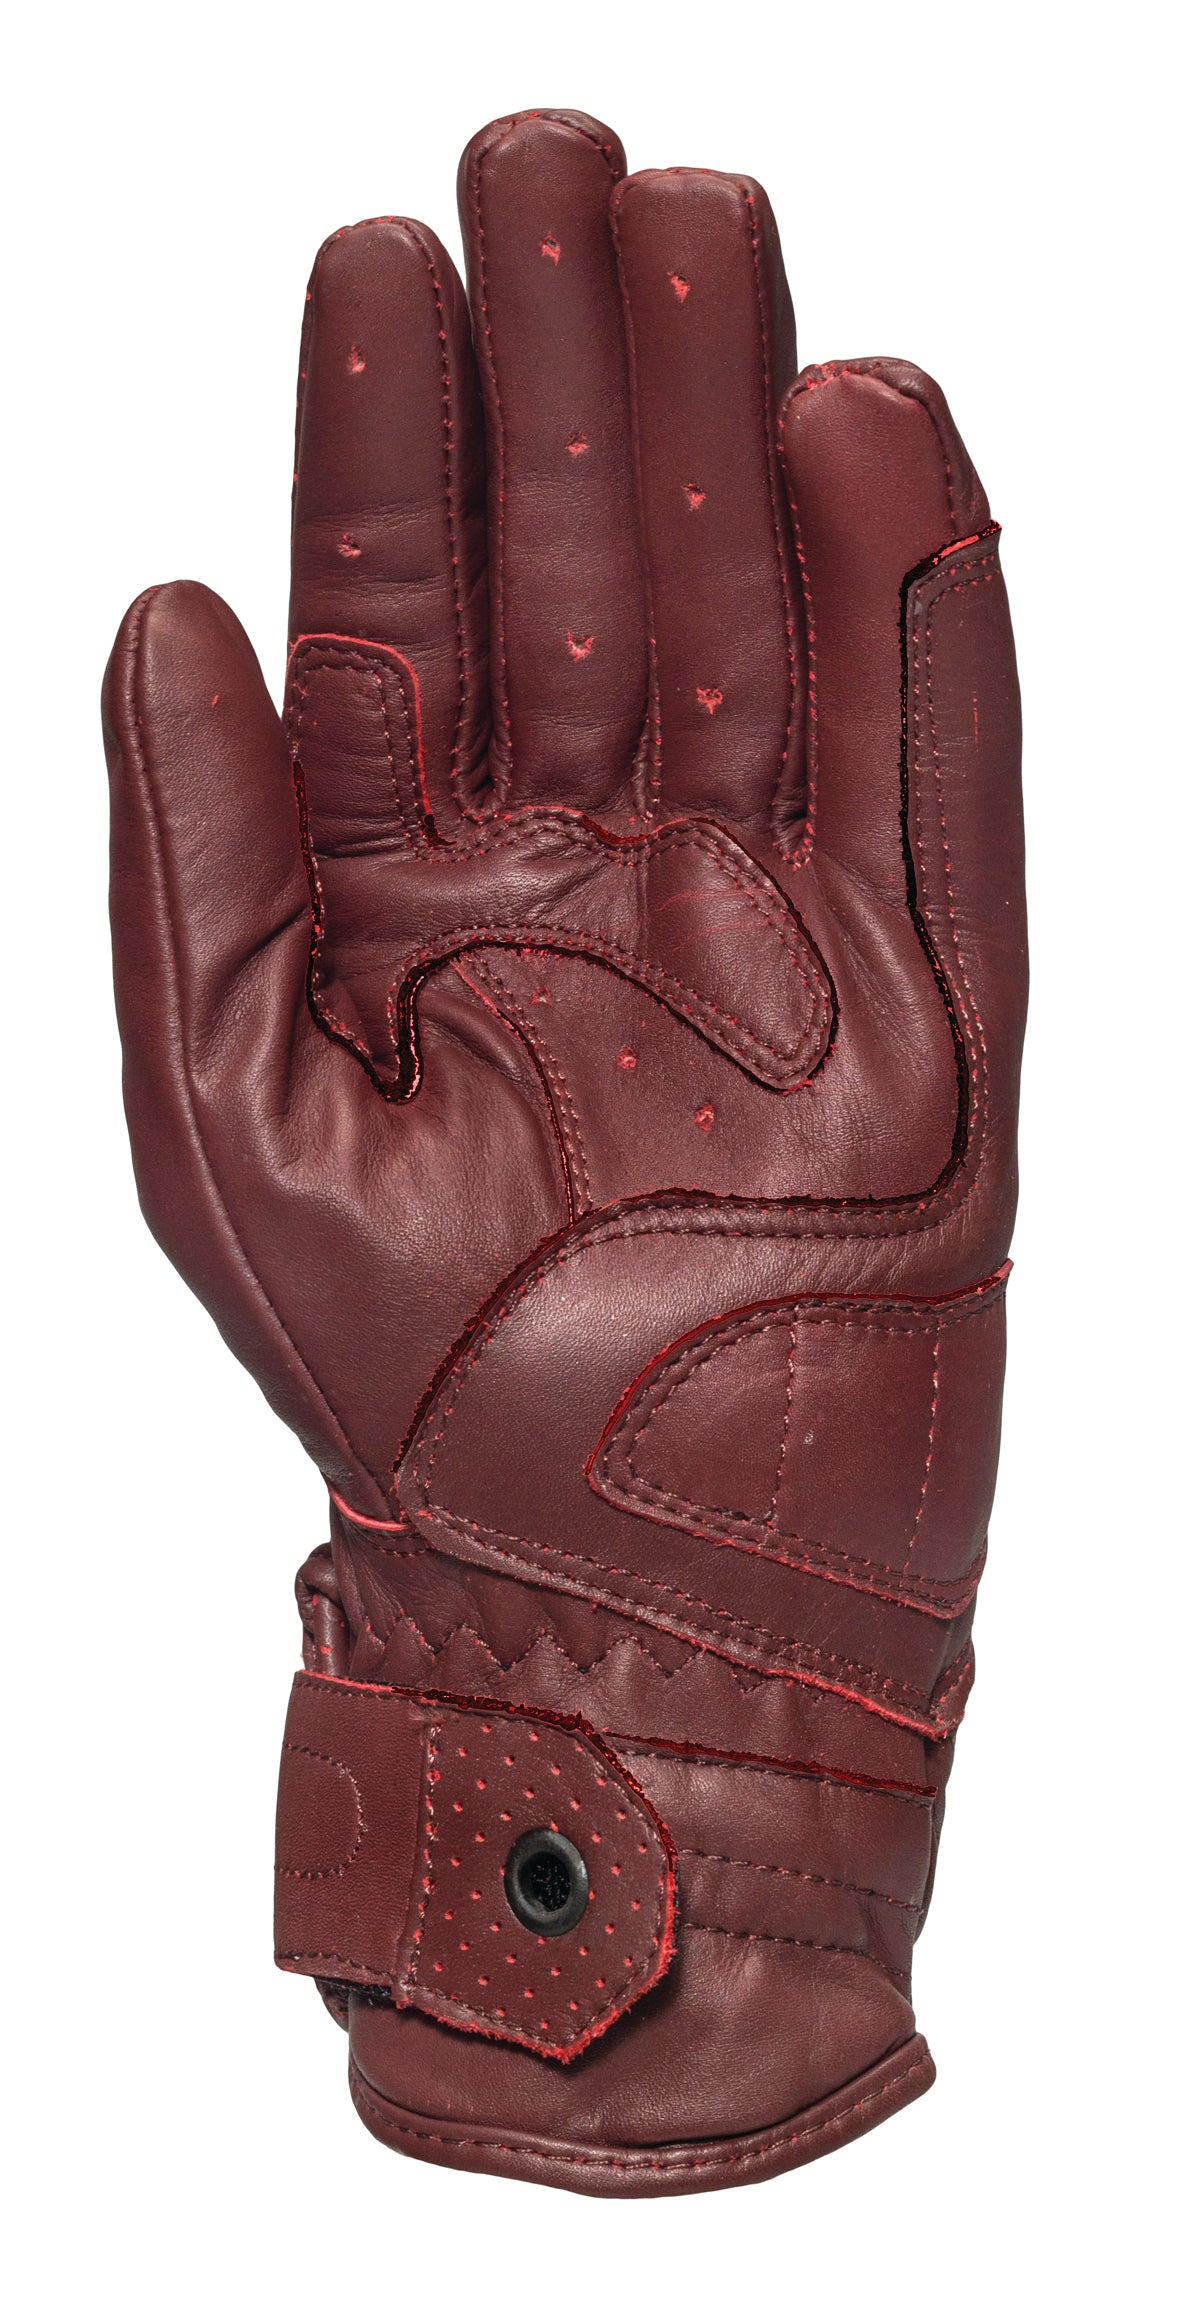 Roland Sands design Ronin Gloves